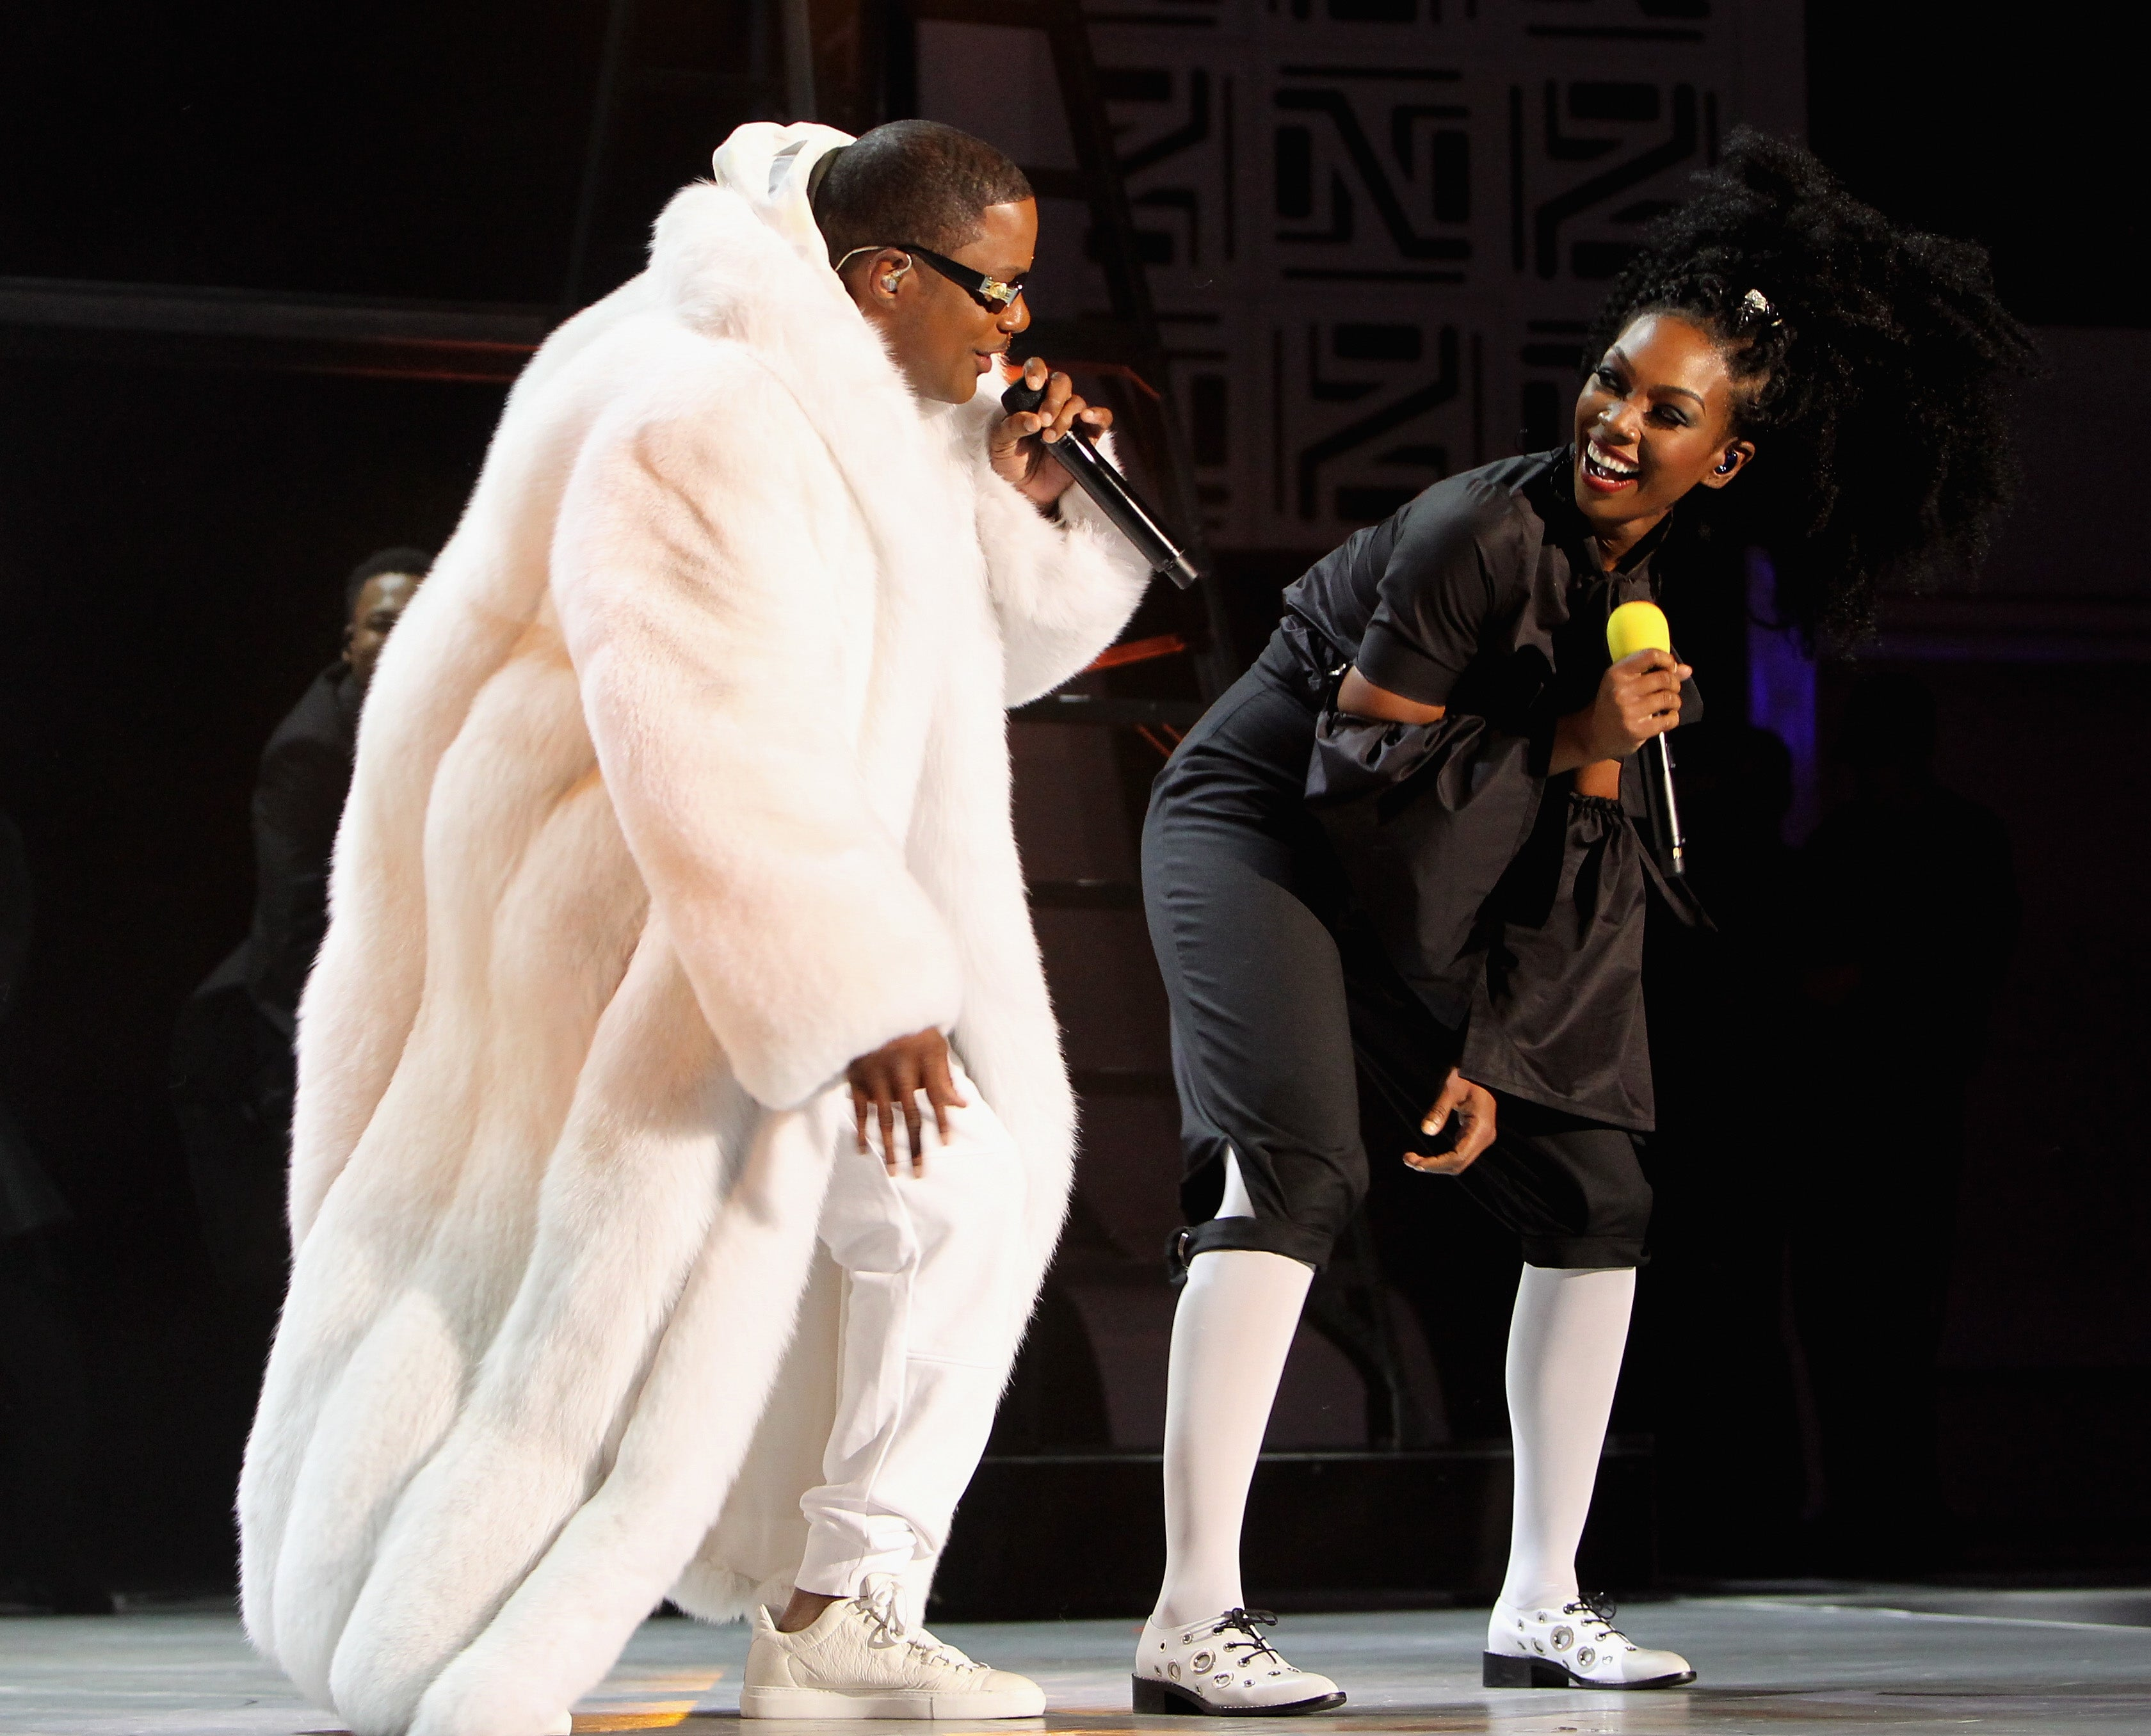 """EXCLUSIVE: Watch Brandy And Ma$e Perform """"Top of the World"""" At The Soul Train Awards"""